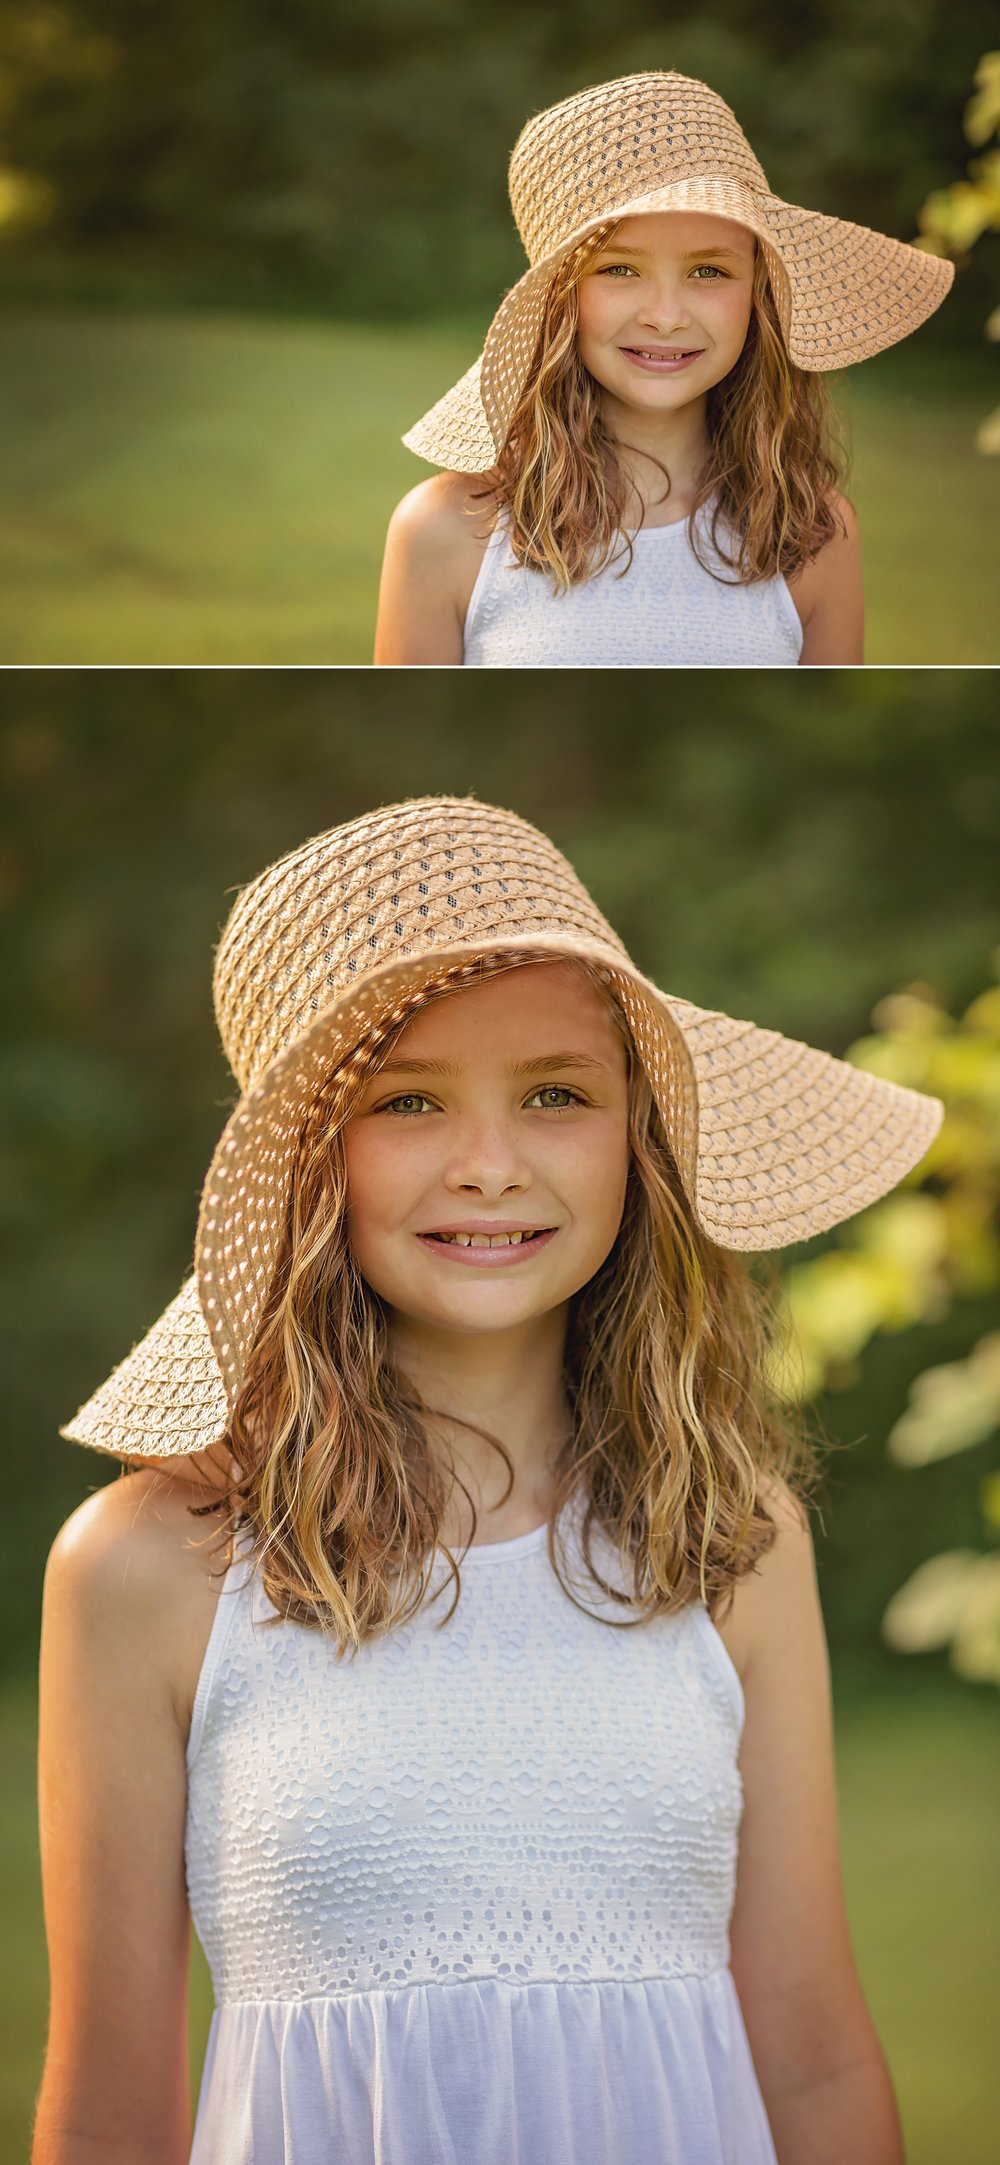 Girl wearing sunhat for Sanford photography session